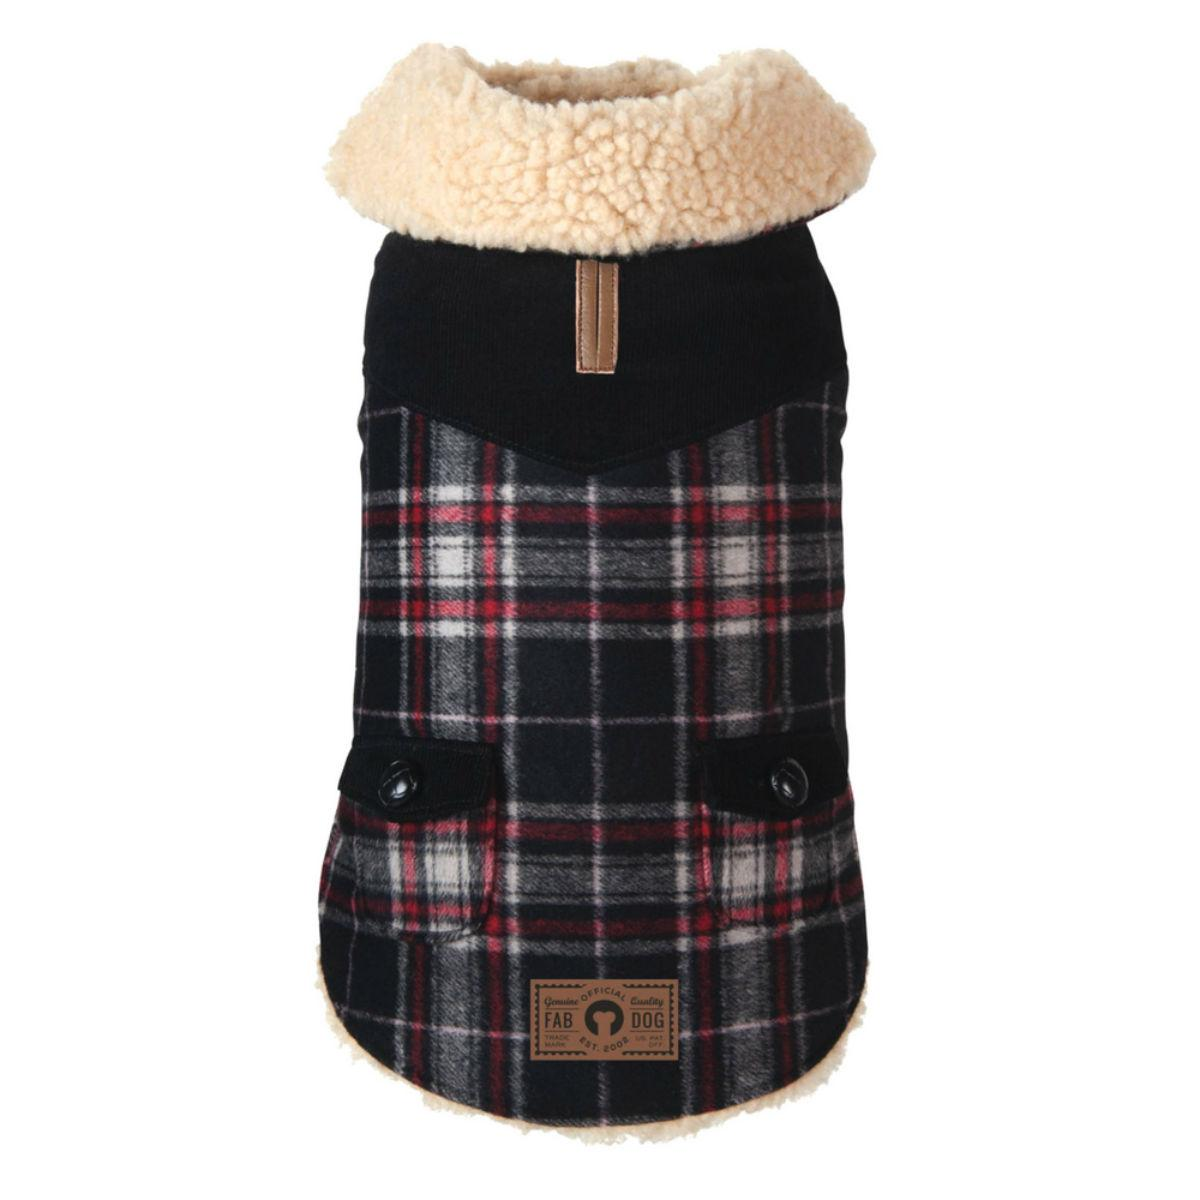 fabdog® Wool Plaid Shearling Dog Jacket - Black